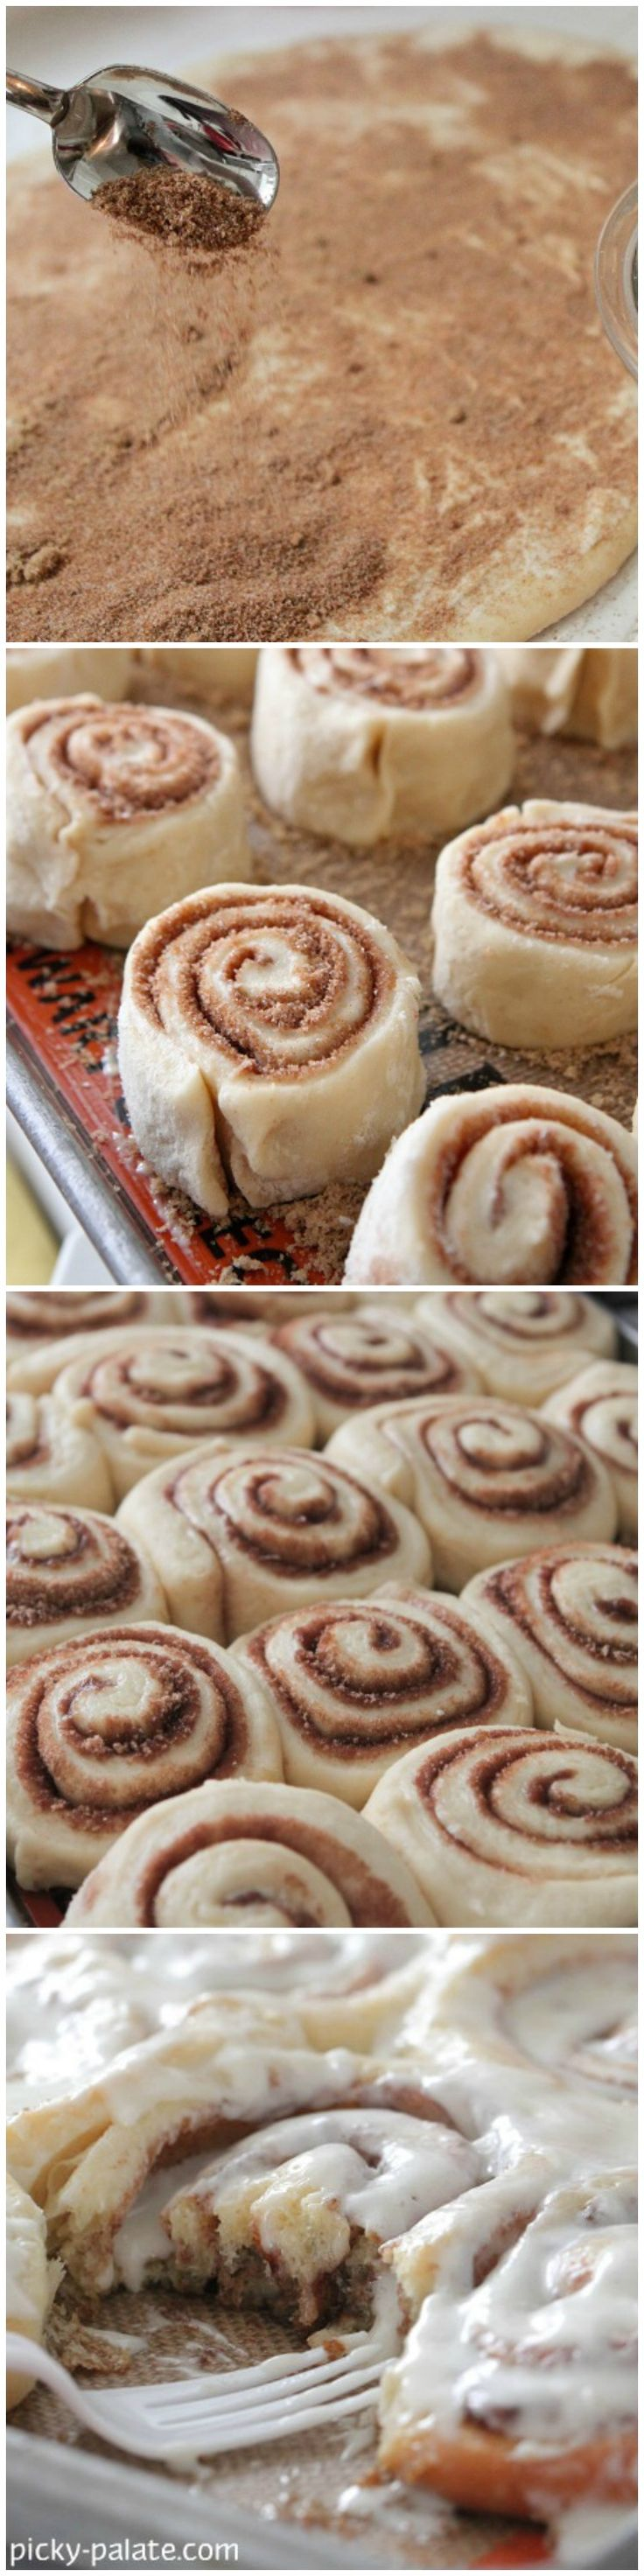 How To Make The Perfect Cinnamon Rolls by Picky Palate! @Jenny Flake, Picky Palate